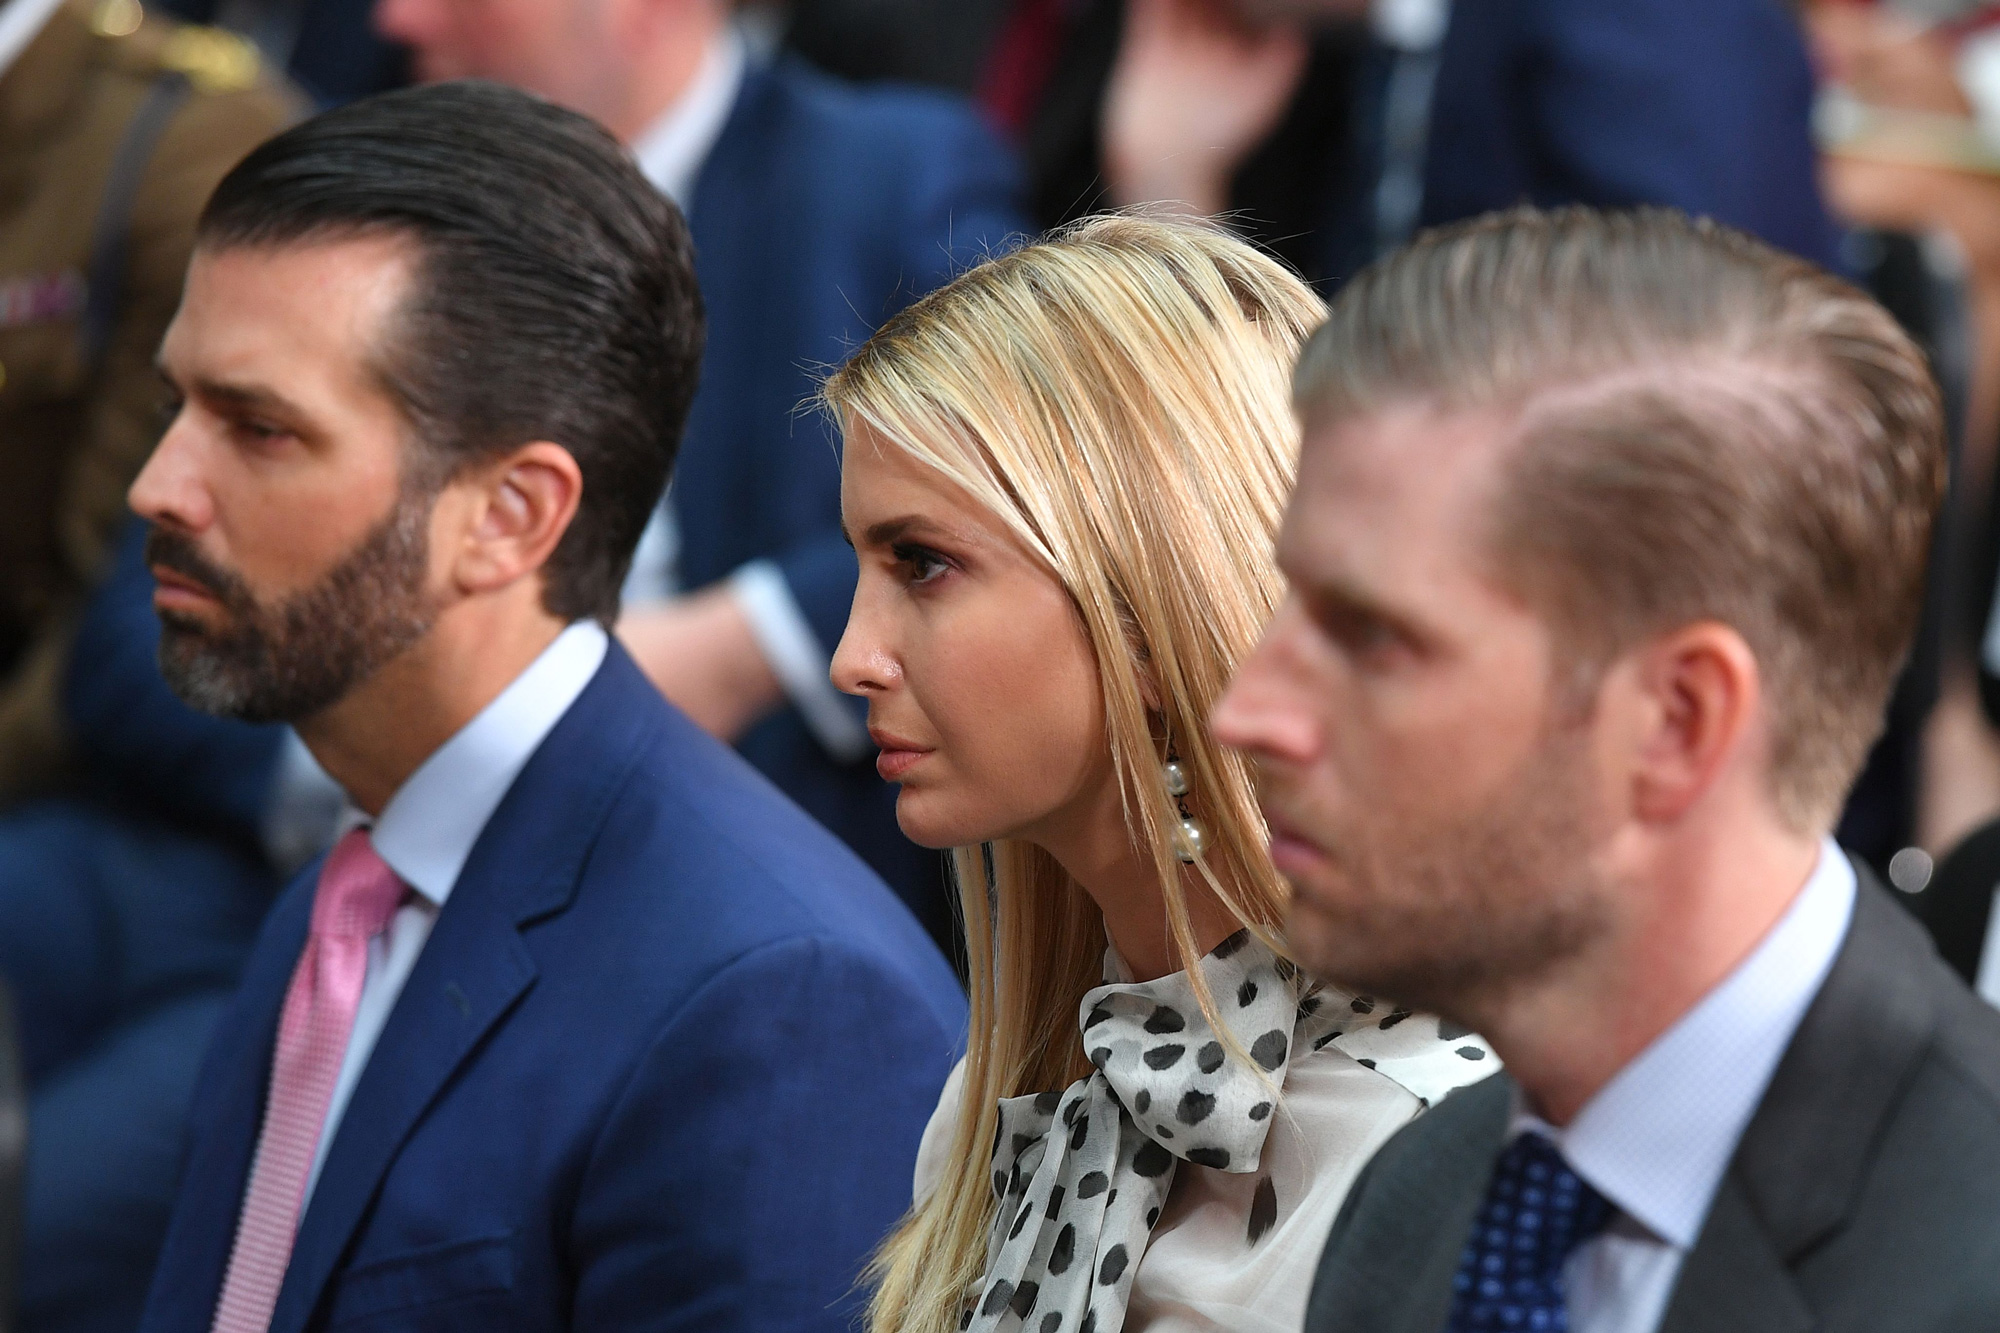 Donald Trump Junior, left, Ivanka Trump, center, and Eric Trump listen during a joint press conference at the Foreign and Commonwealth office in London on June 4, 2019.